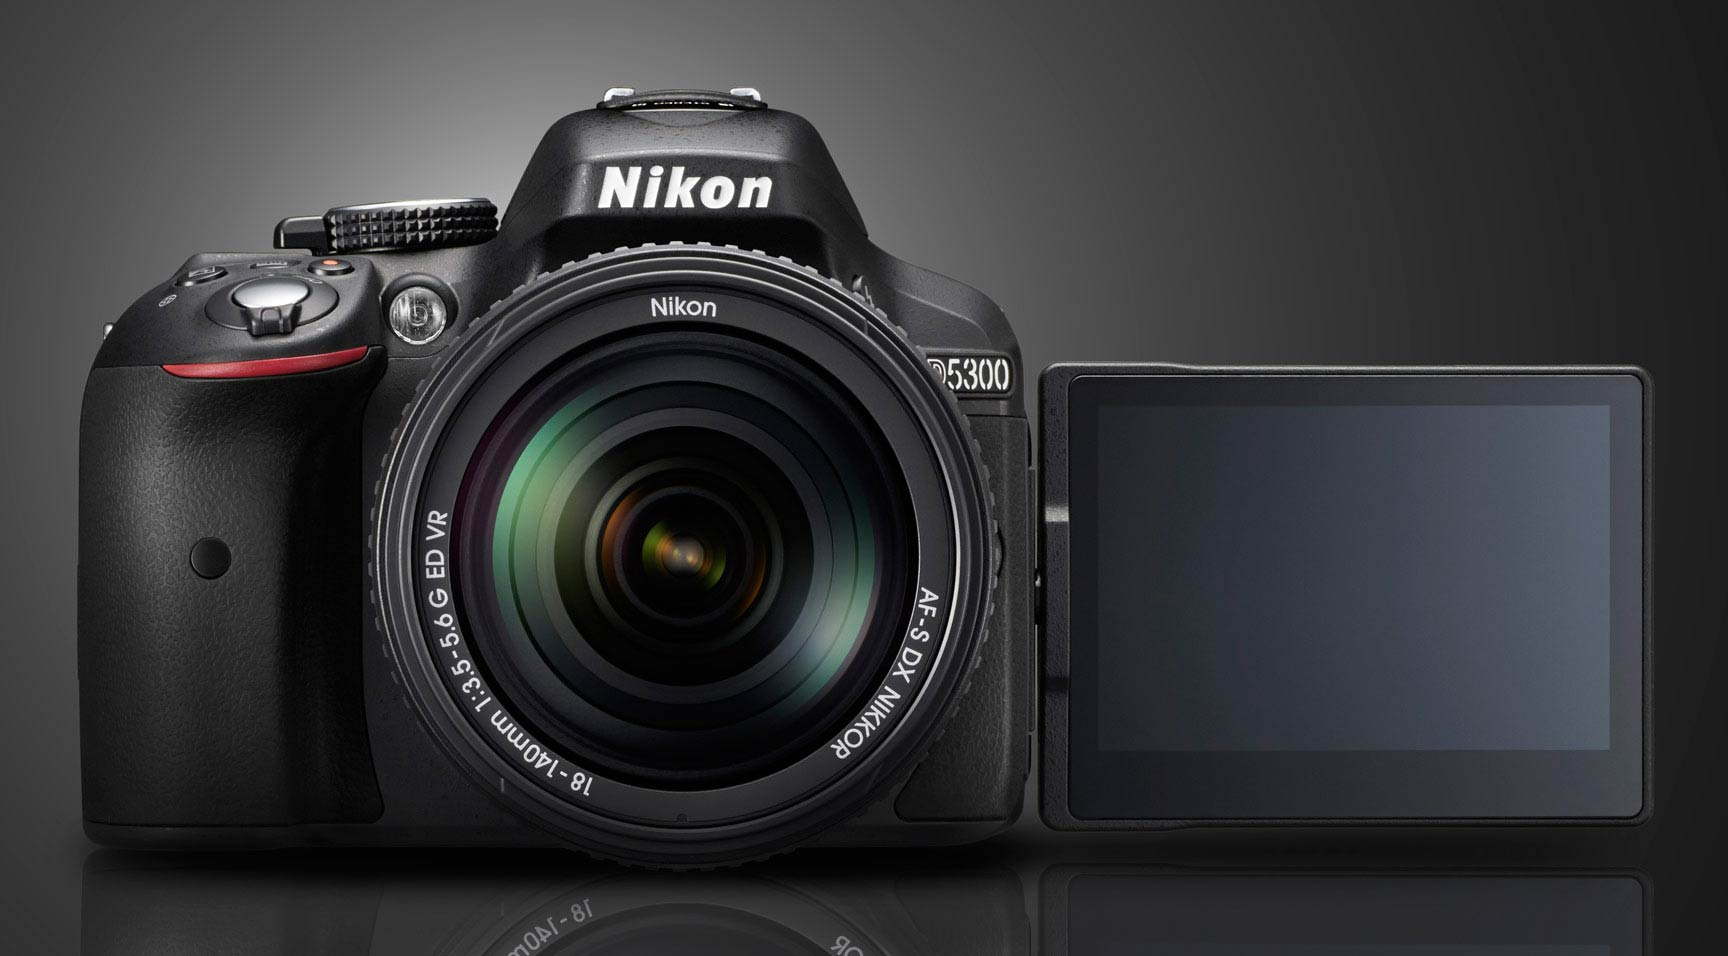 Nikon Announces D5300 SLR With Same Sensor As D7100, and AF-S 58mm f/1.4 Lens